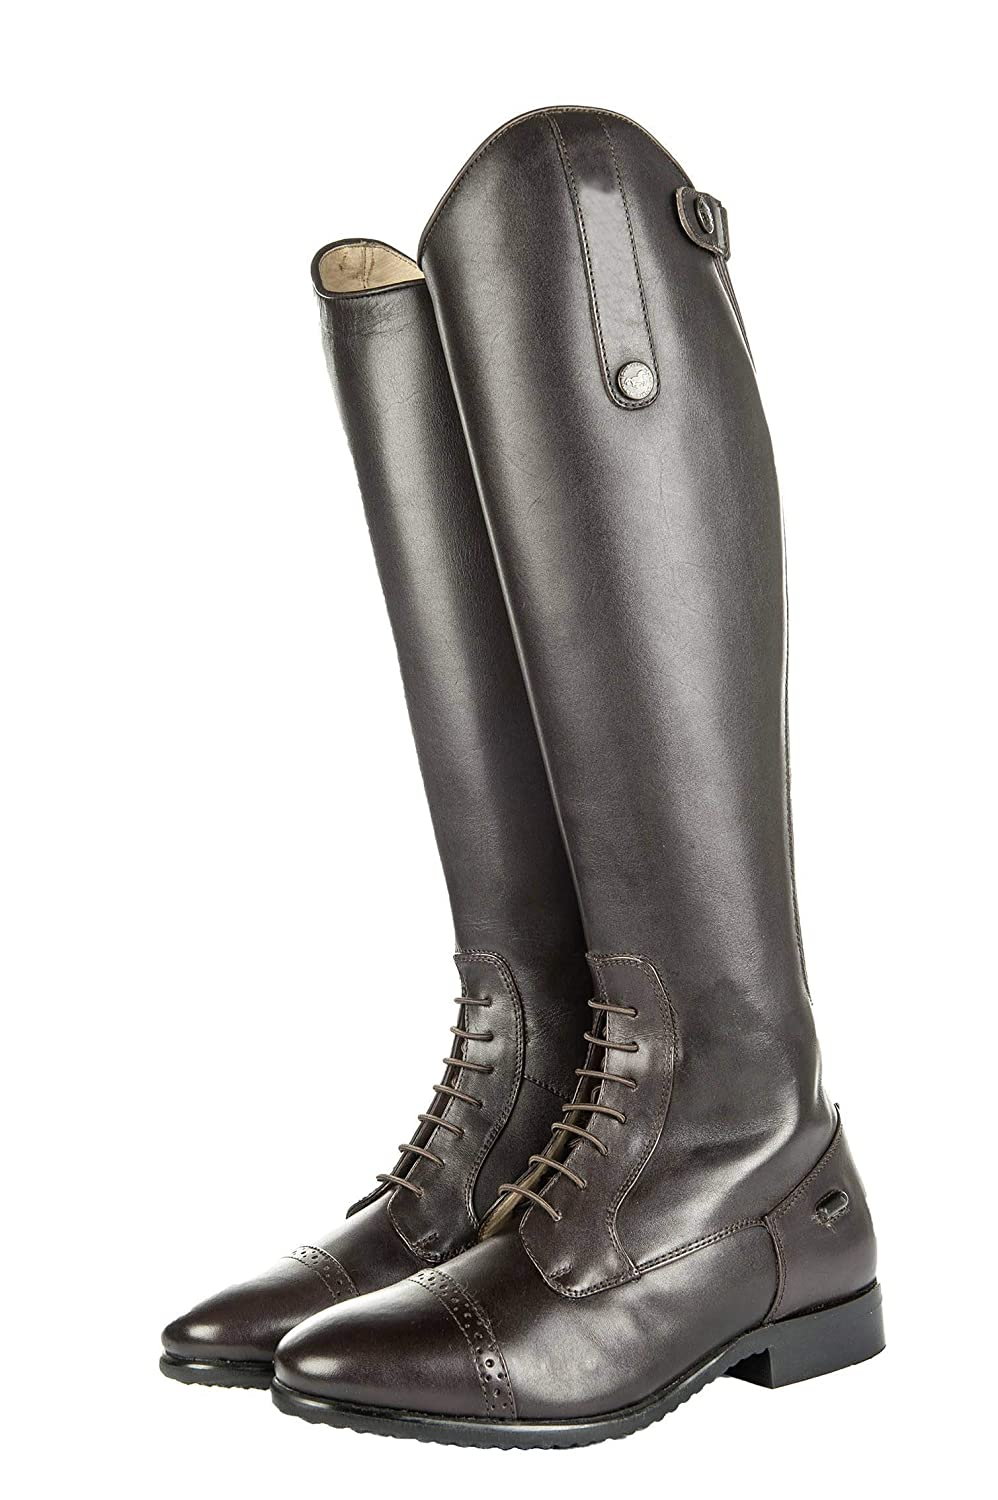 HKM SPORTS EQUIPMENT Reitstiefel Normal//Extra Weit9100 Hose Valencia-